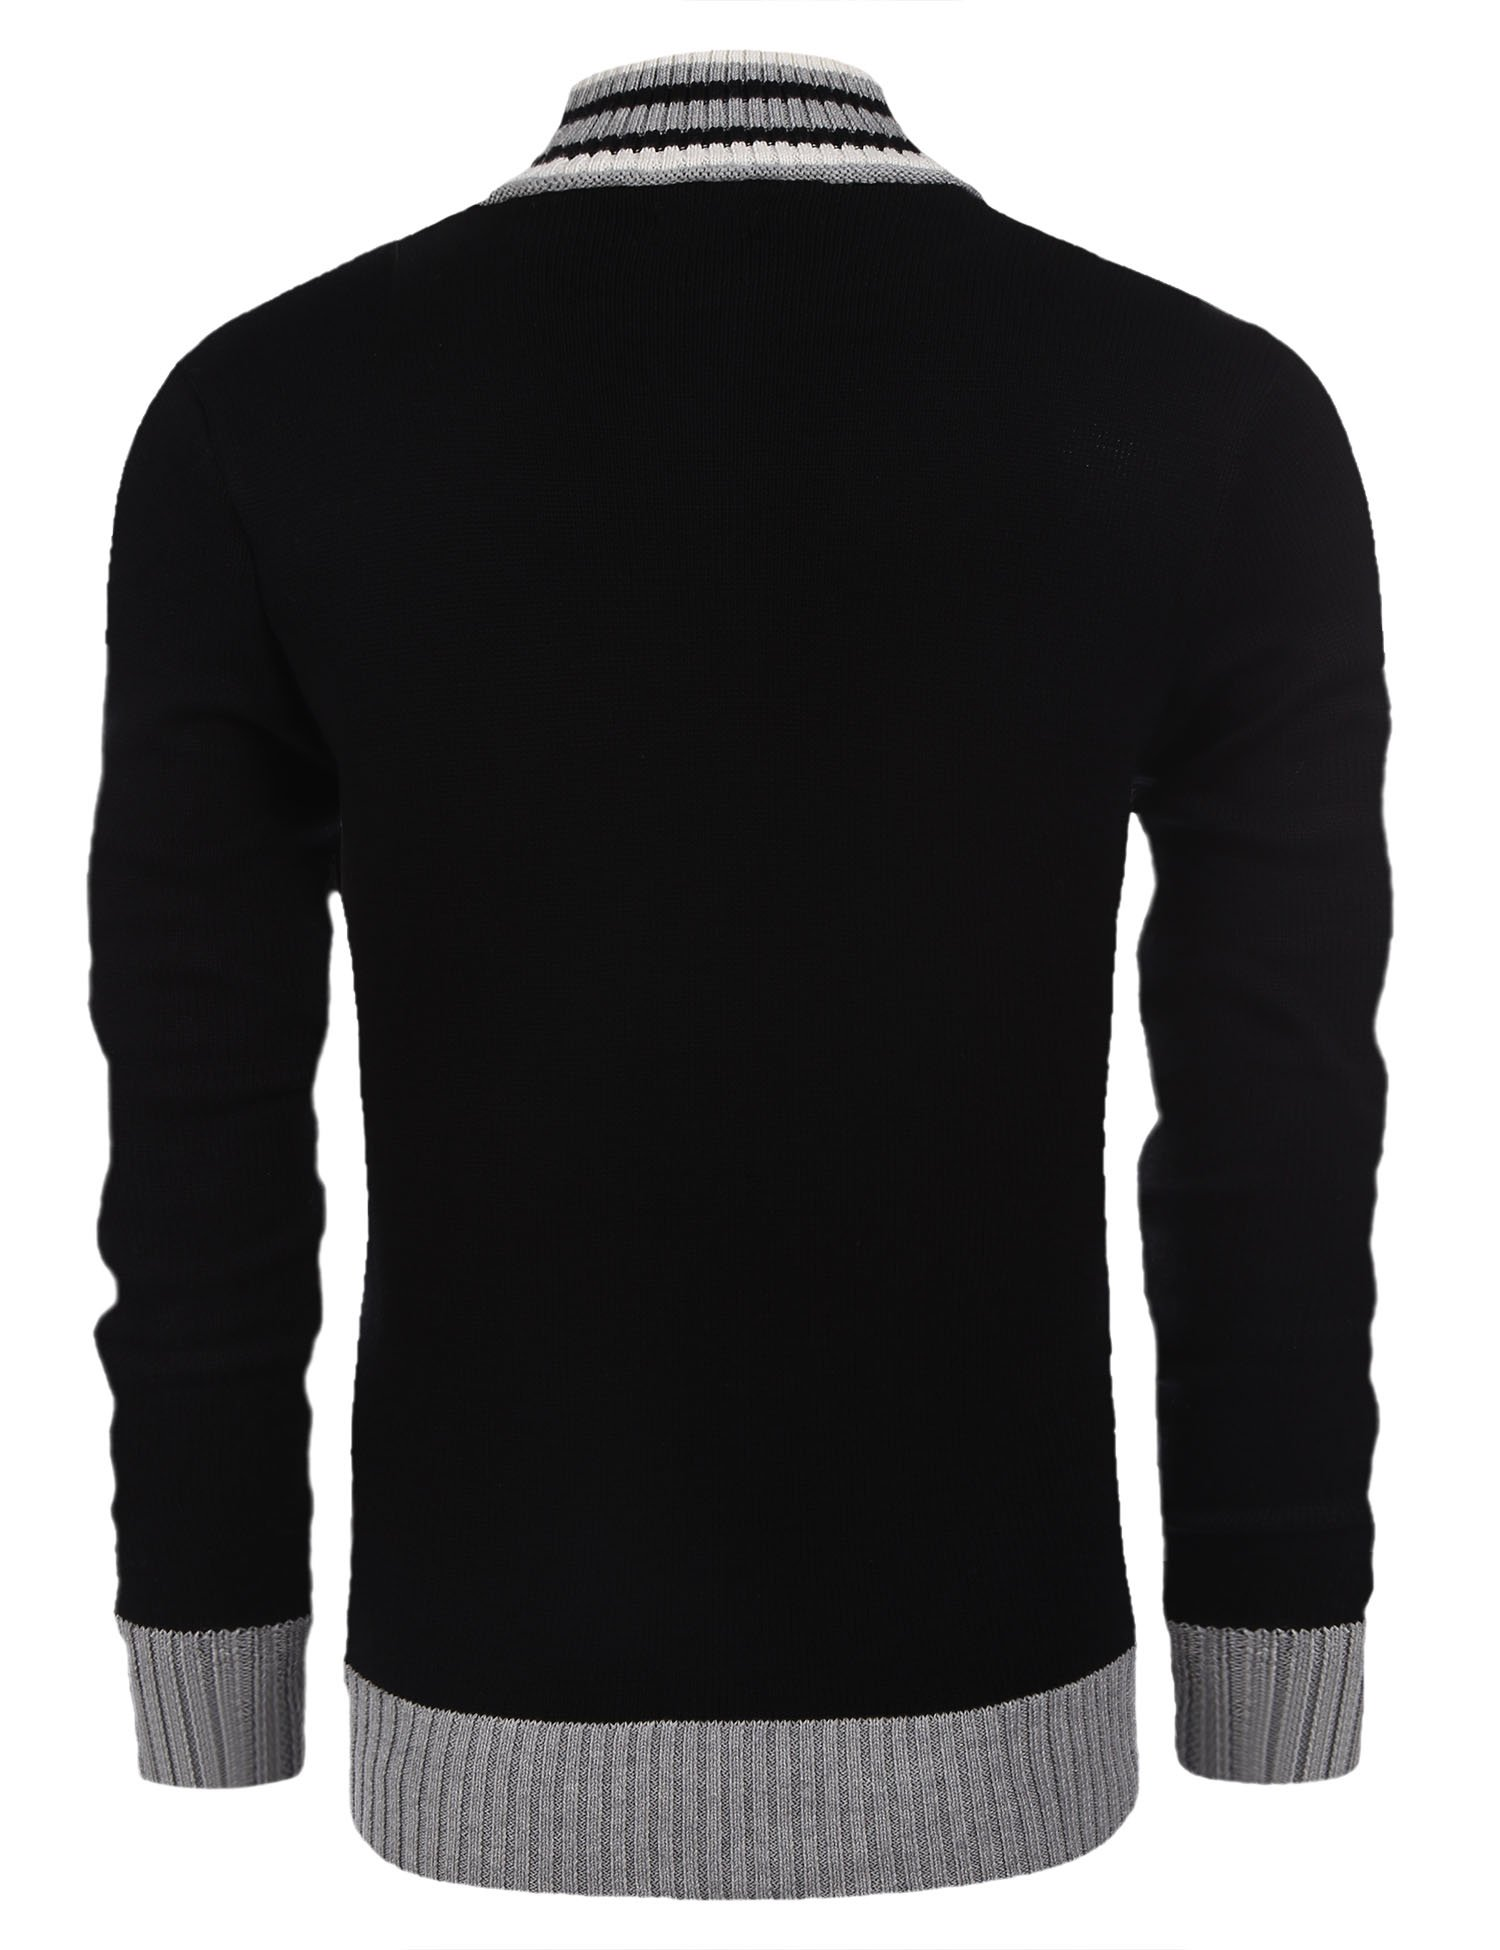 COOFANDY Men's Business Casual Crew Neck Long Sleeve Sweater Quarter-Zip Pullover by COOFANDY (Image #3)